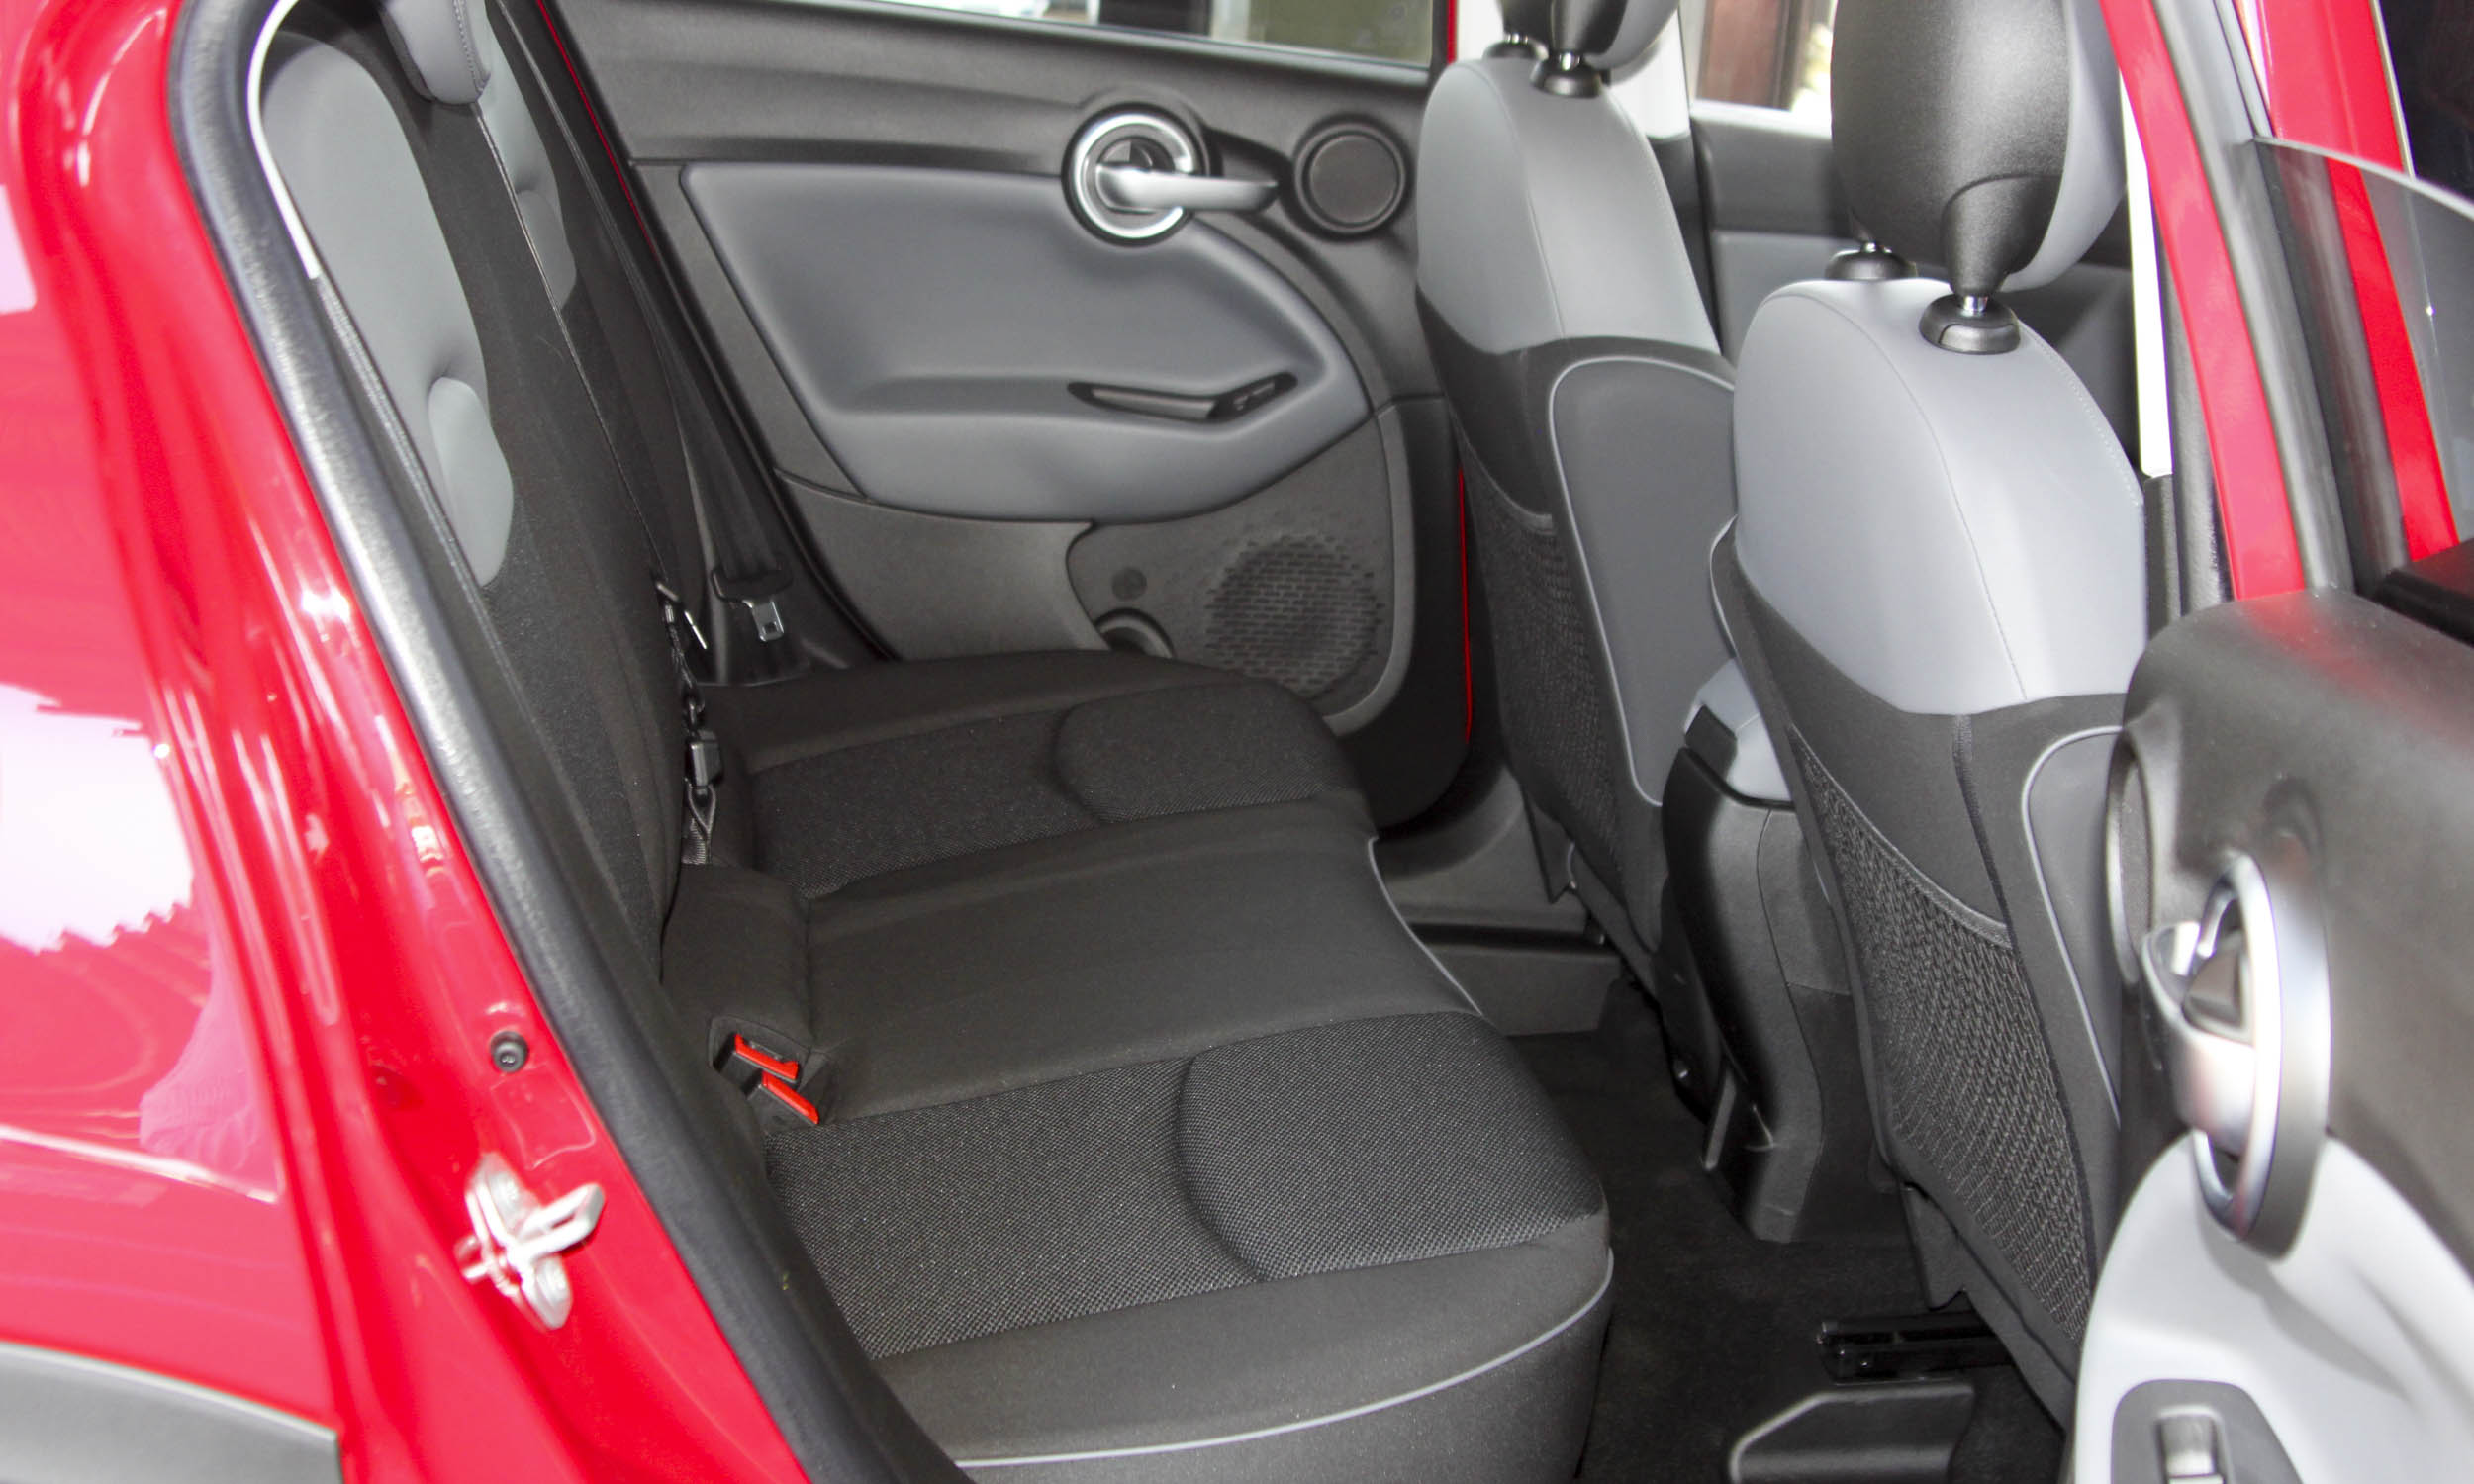 fiat seat general version img views name two backseat attachment discussion in seats rear child for size forum image larger click